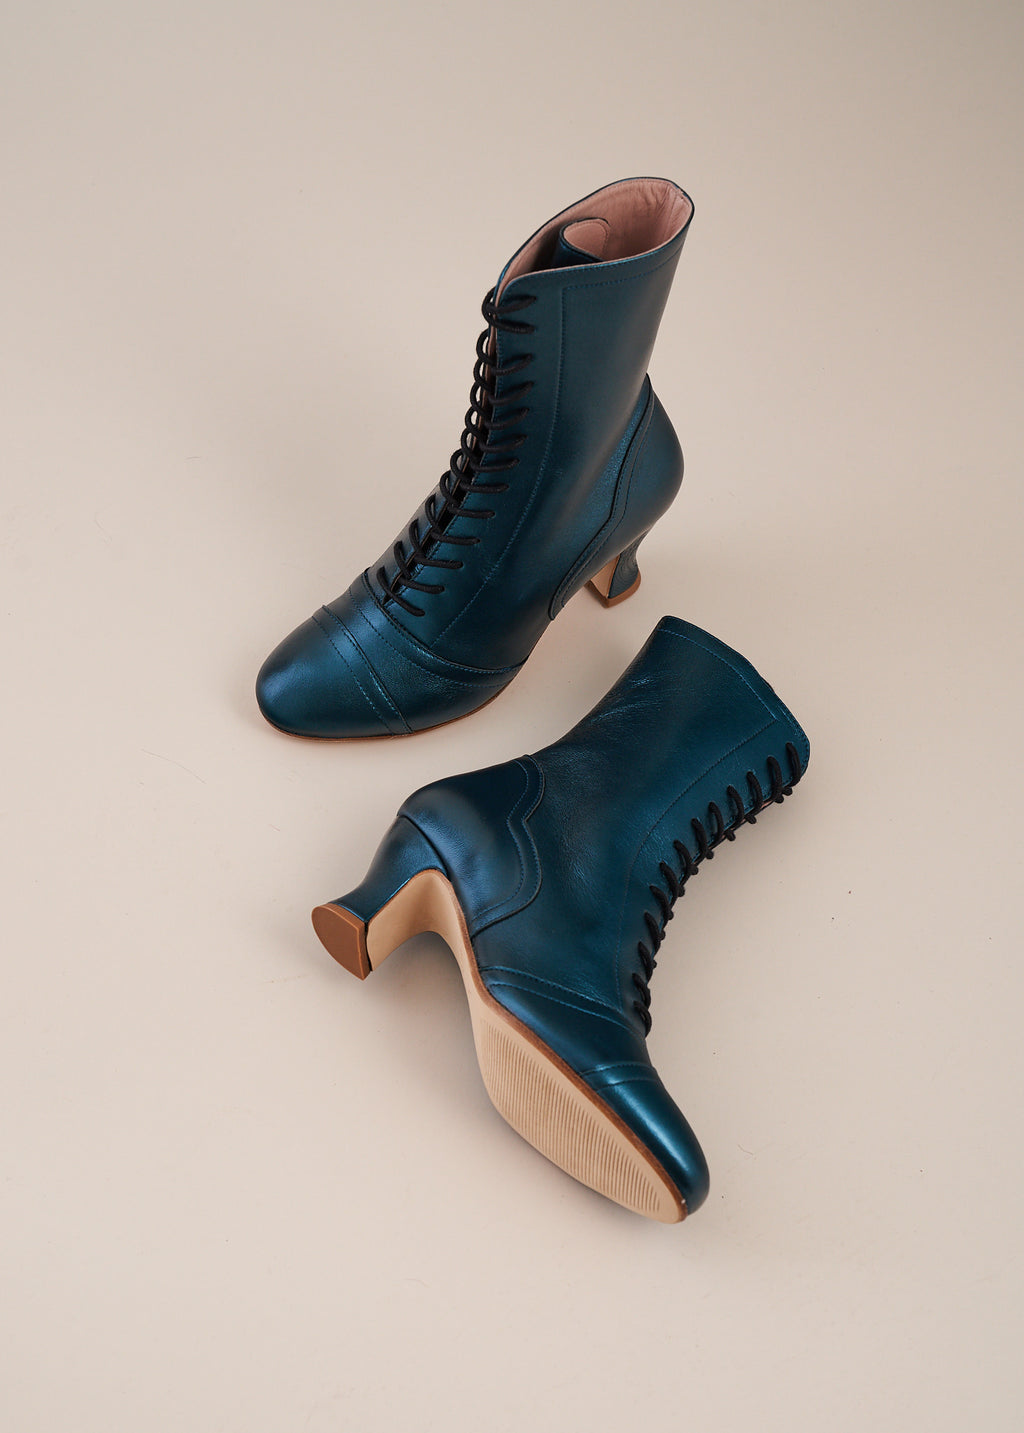 Frida Luxe Teal Metallic Leather Lace up Boots- LAST 3 PAIRS!